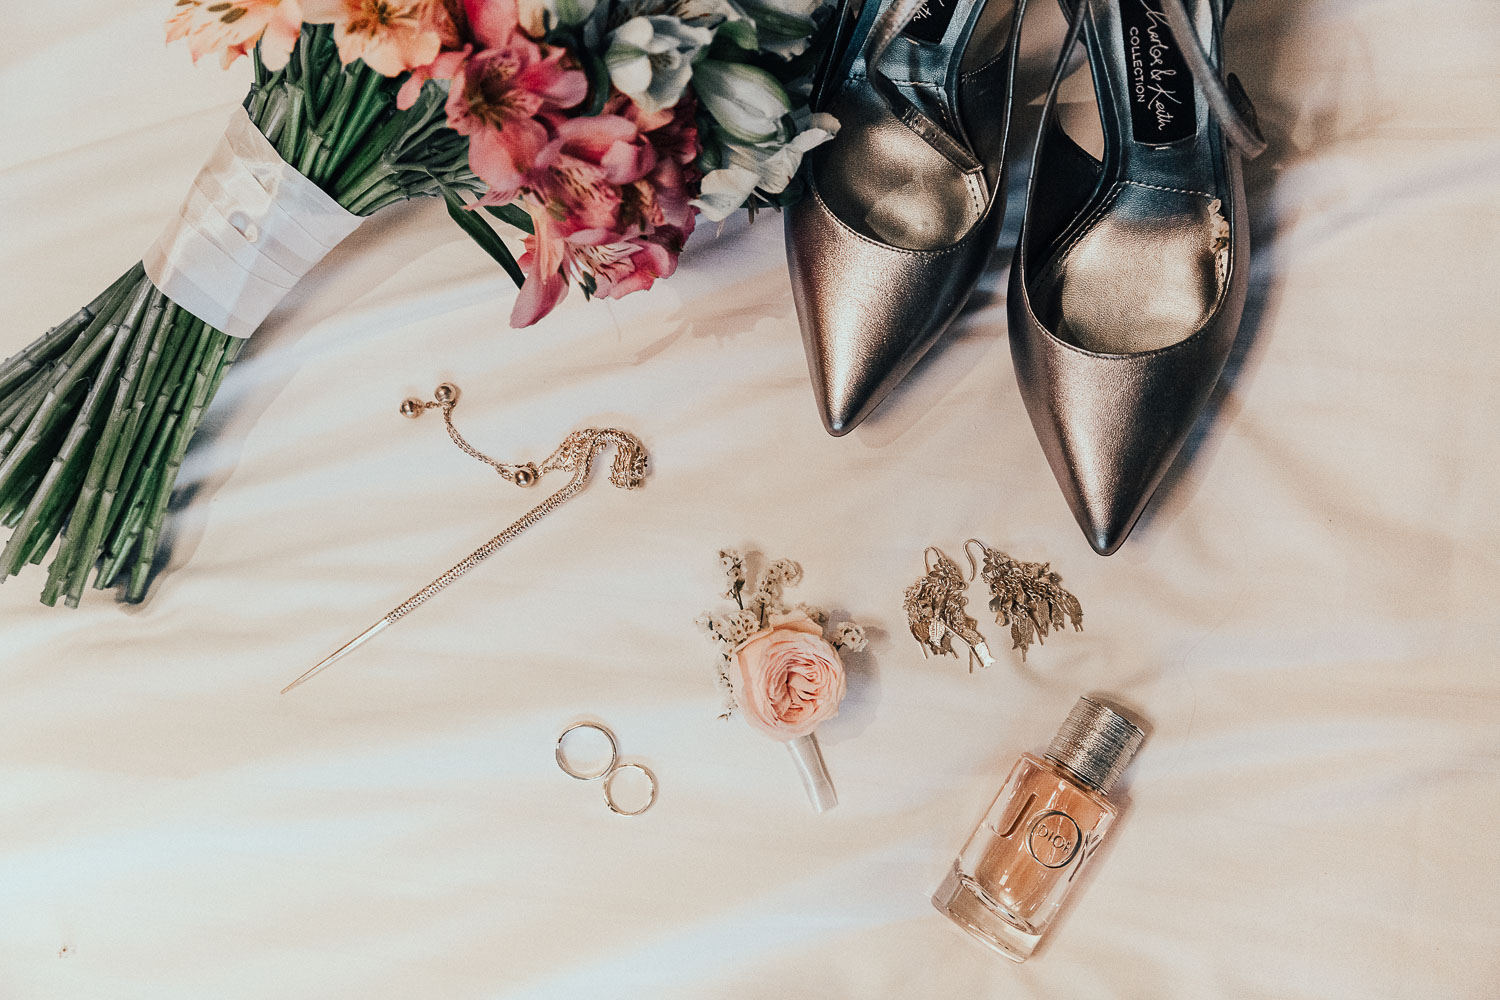 Wedding details layout made by photographer in Amsterdam shows bridal shoes, flower bouquet, rings, buttonhole and perfume.